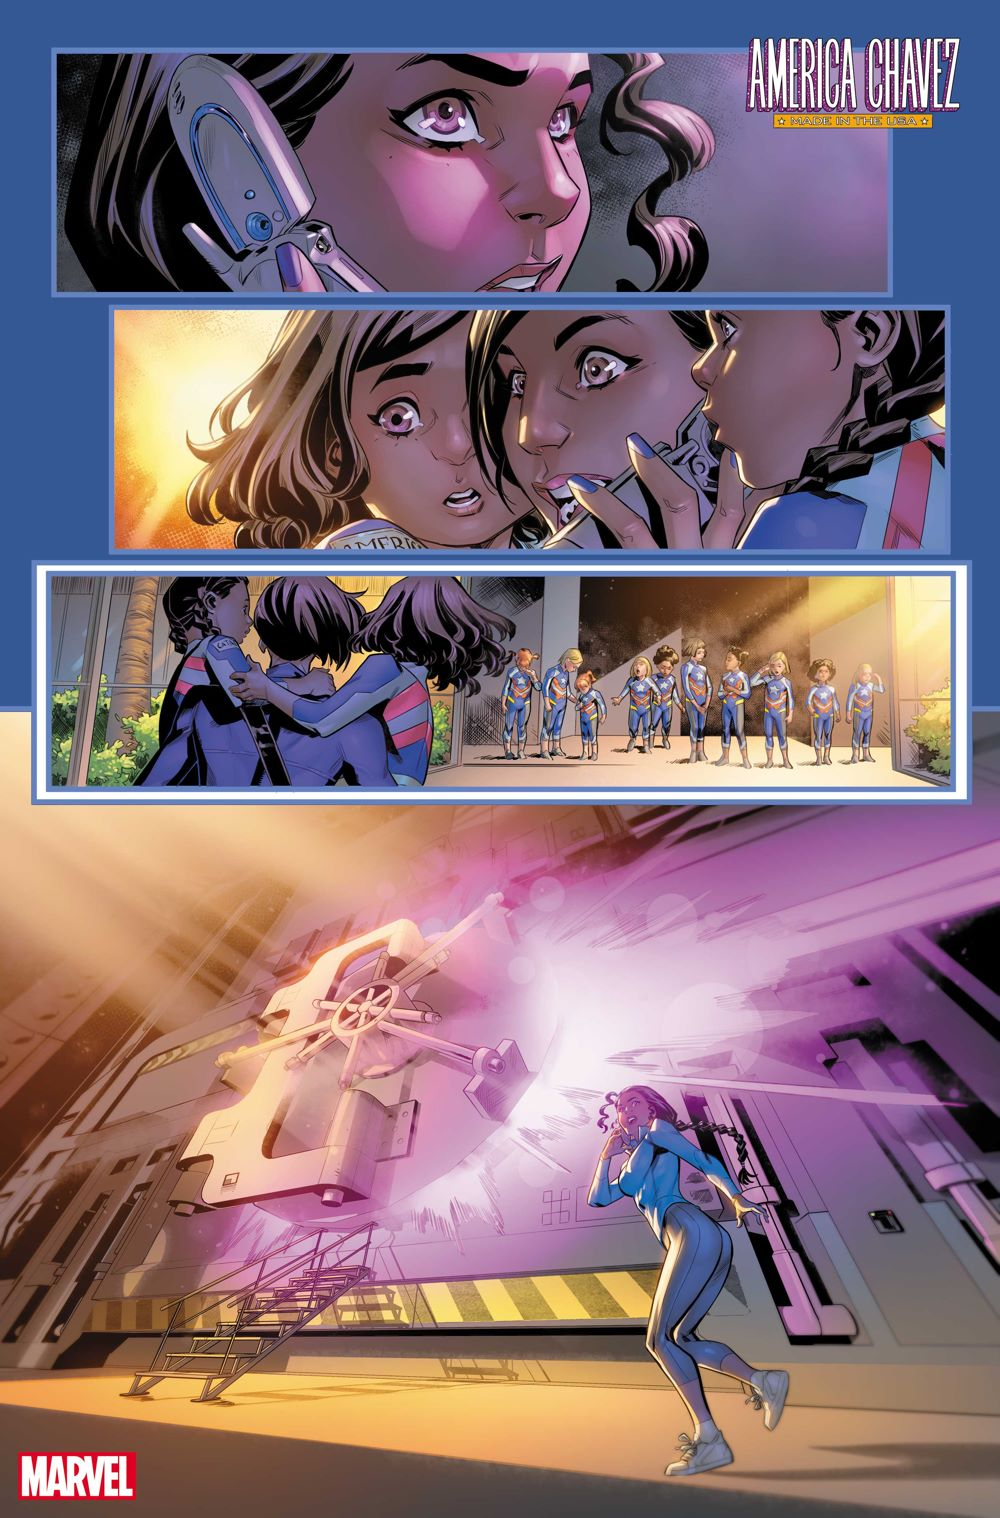 AMERCHAVEZUSA2021004_3 First Look at AMERICA CHAVEZ: MADE IN THE USA #4 from Marvel Comics